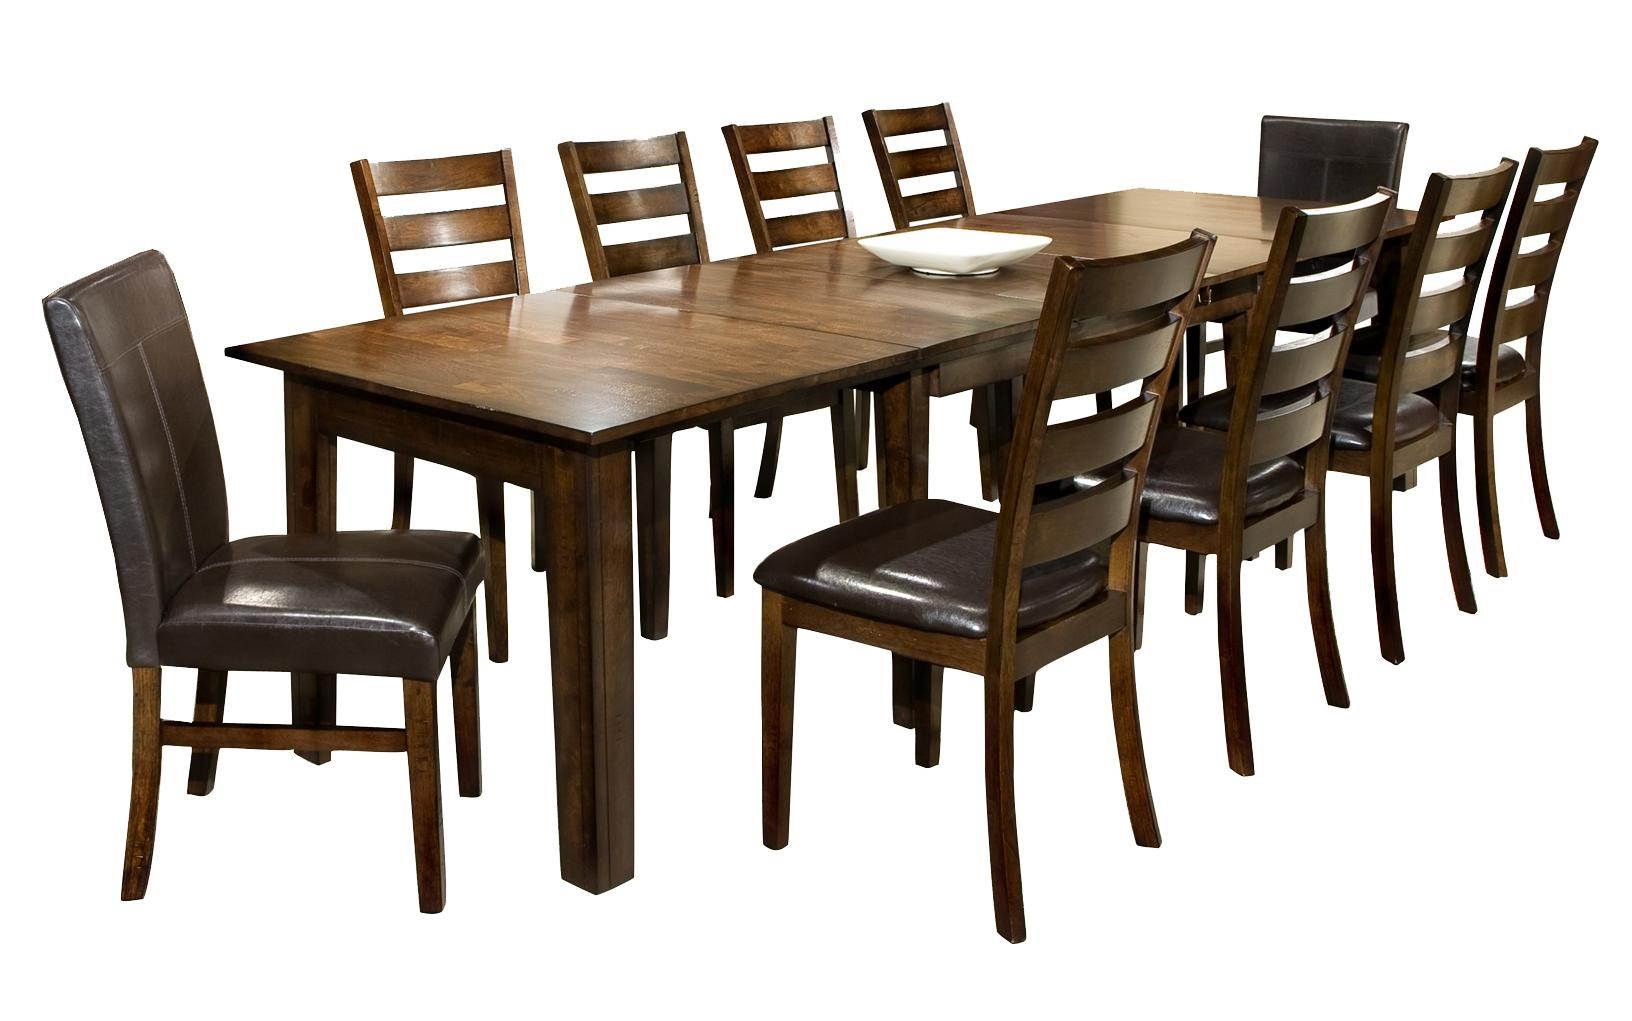 Superb Intercon Kona 11 Piece Dining Set With Table And Chairs